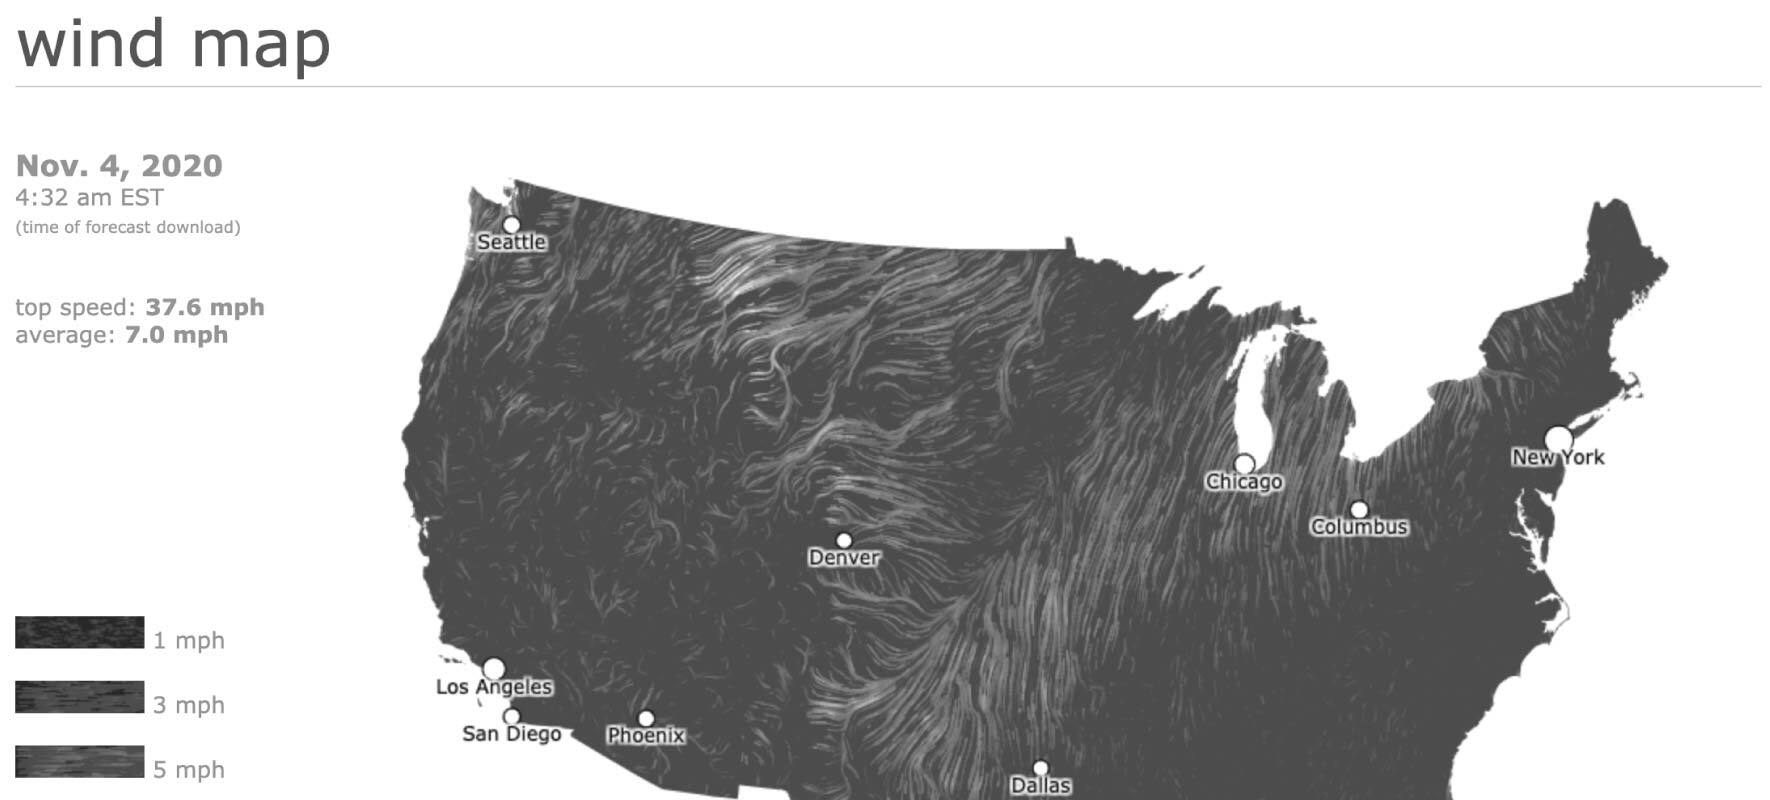 Infographic Examples Wind Map